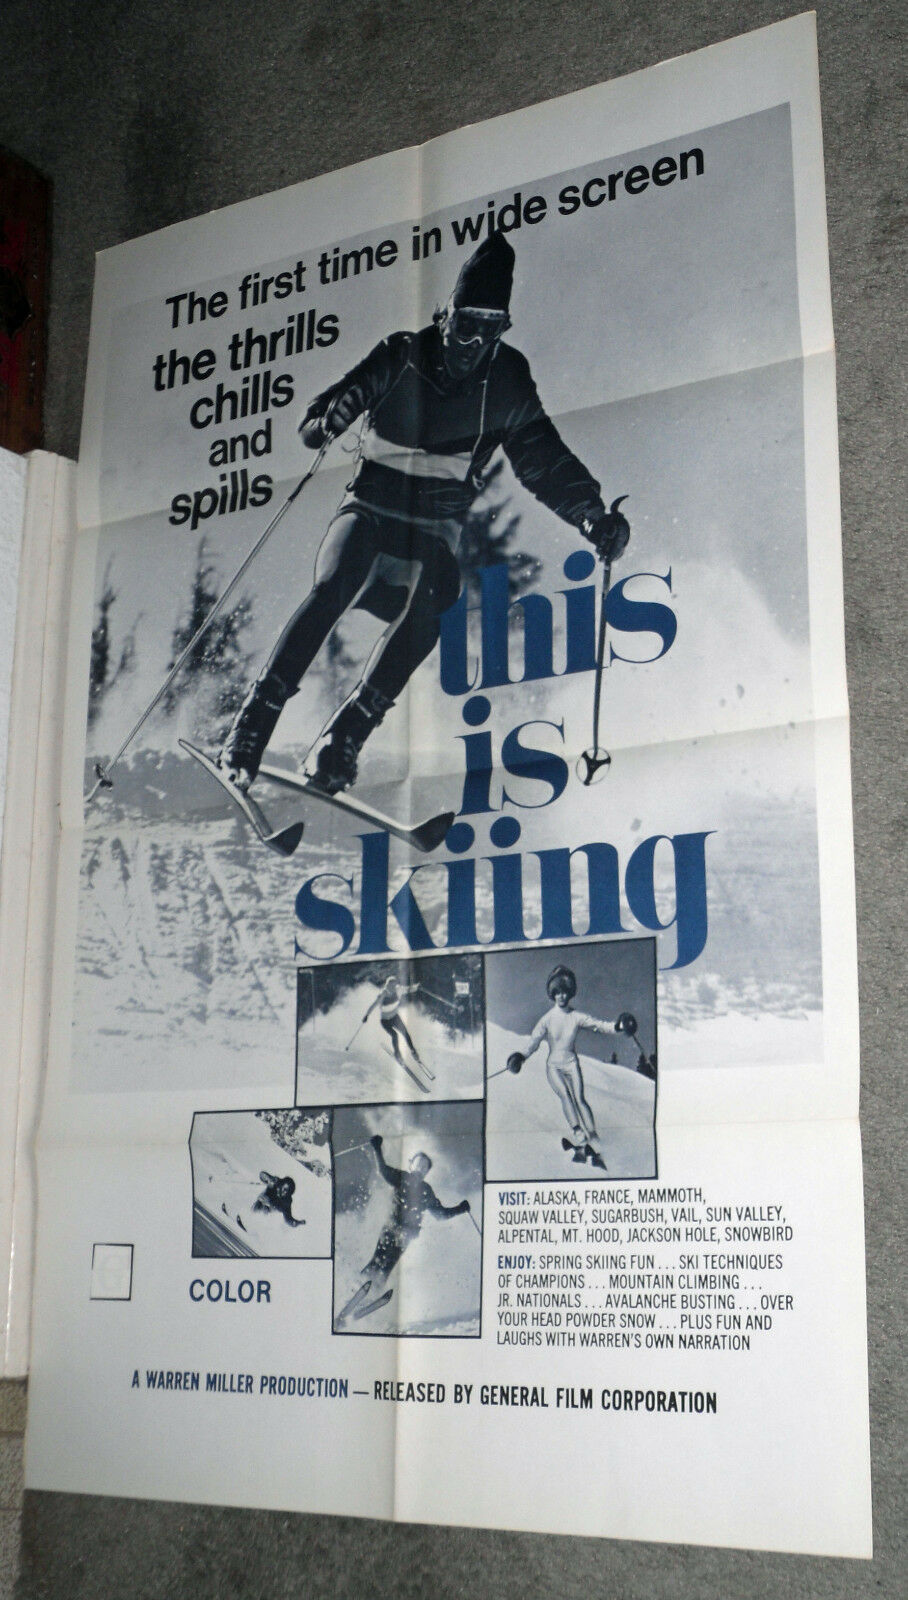 THIS IS SKIING SKIING SKIING orig 1972 one sheet movie poster DOWNHILL SKIING/WARREN MILLER e46d2f